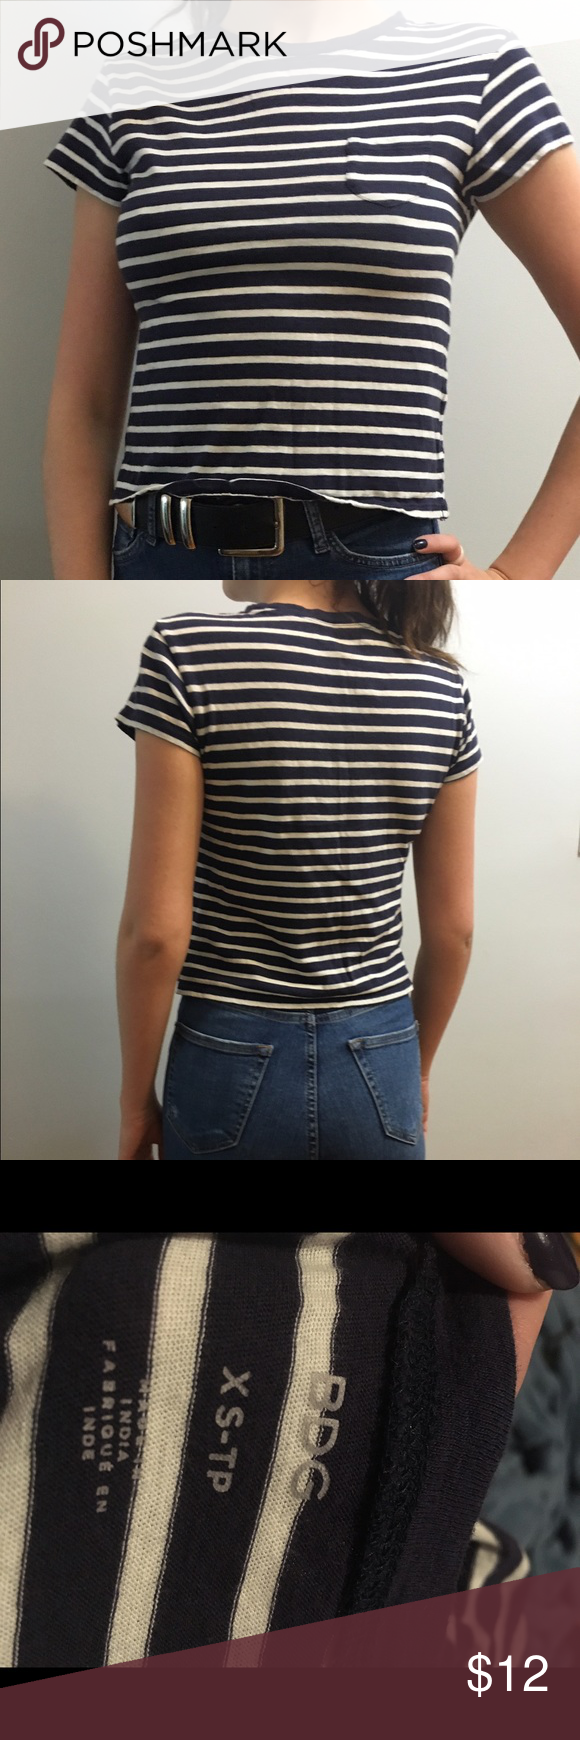 BOGO 50% Striped Cropped Tshirt SALE!! EVERYTHING in my shop will be Buy One Get One HALF OFF until MONDAY!! The lesser valued item will recieve the discount make a bundle and i will give you the sale price for it!!   Blue and white striped cropped tshirt with pocket on front. Great basic!  ***   ***   ***   ***   *** • NO SWAPS • Please message me with any and all inquiries • MAKE ME AN OFFER! Please no lowballing.  • Discounts on bundles! • Smoke-free house • No returns  :) Urban…